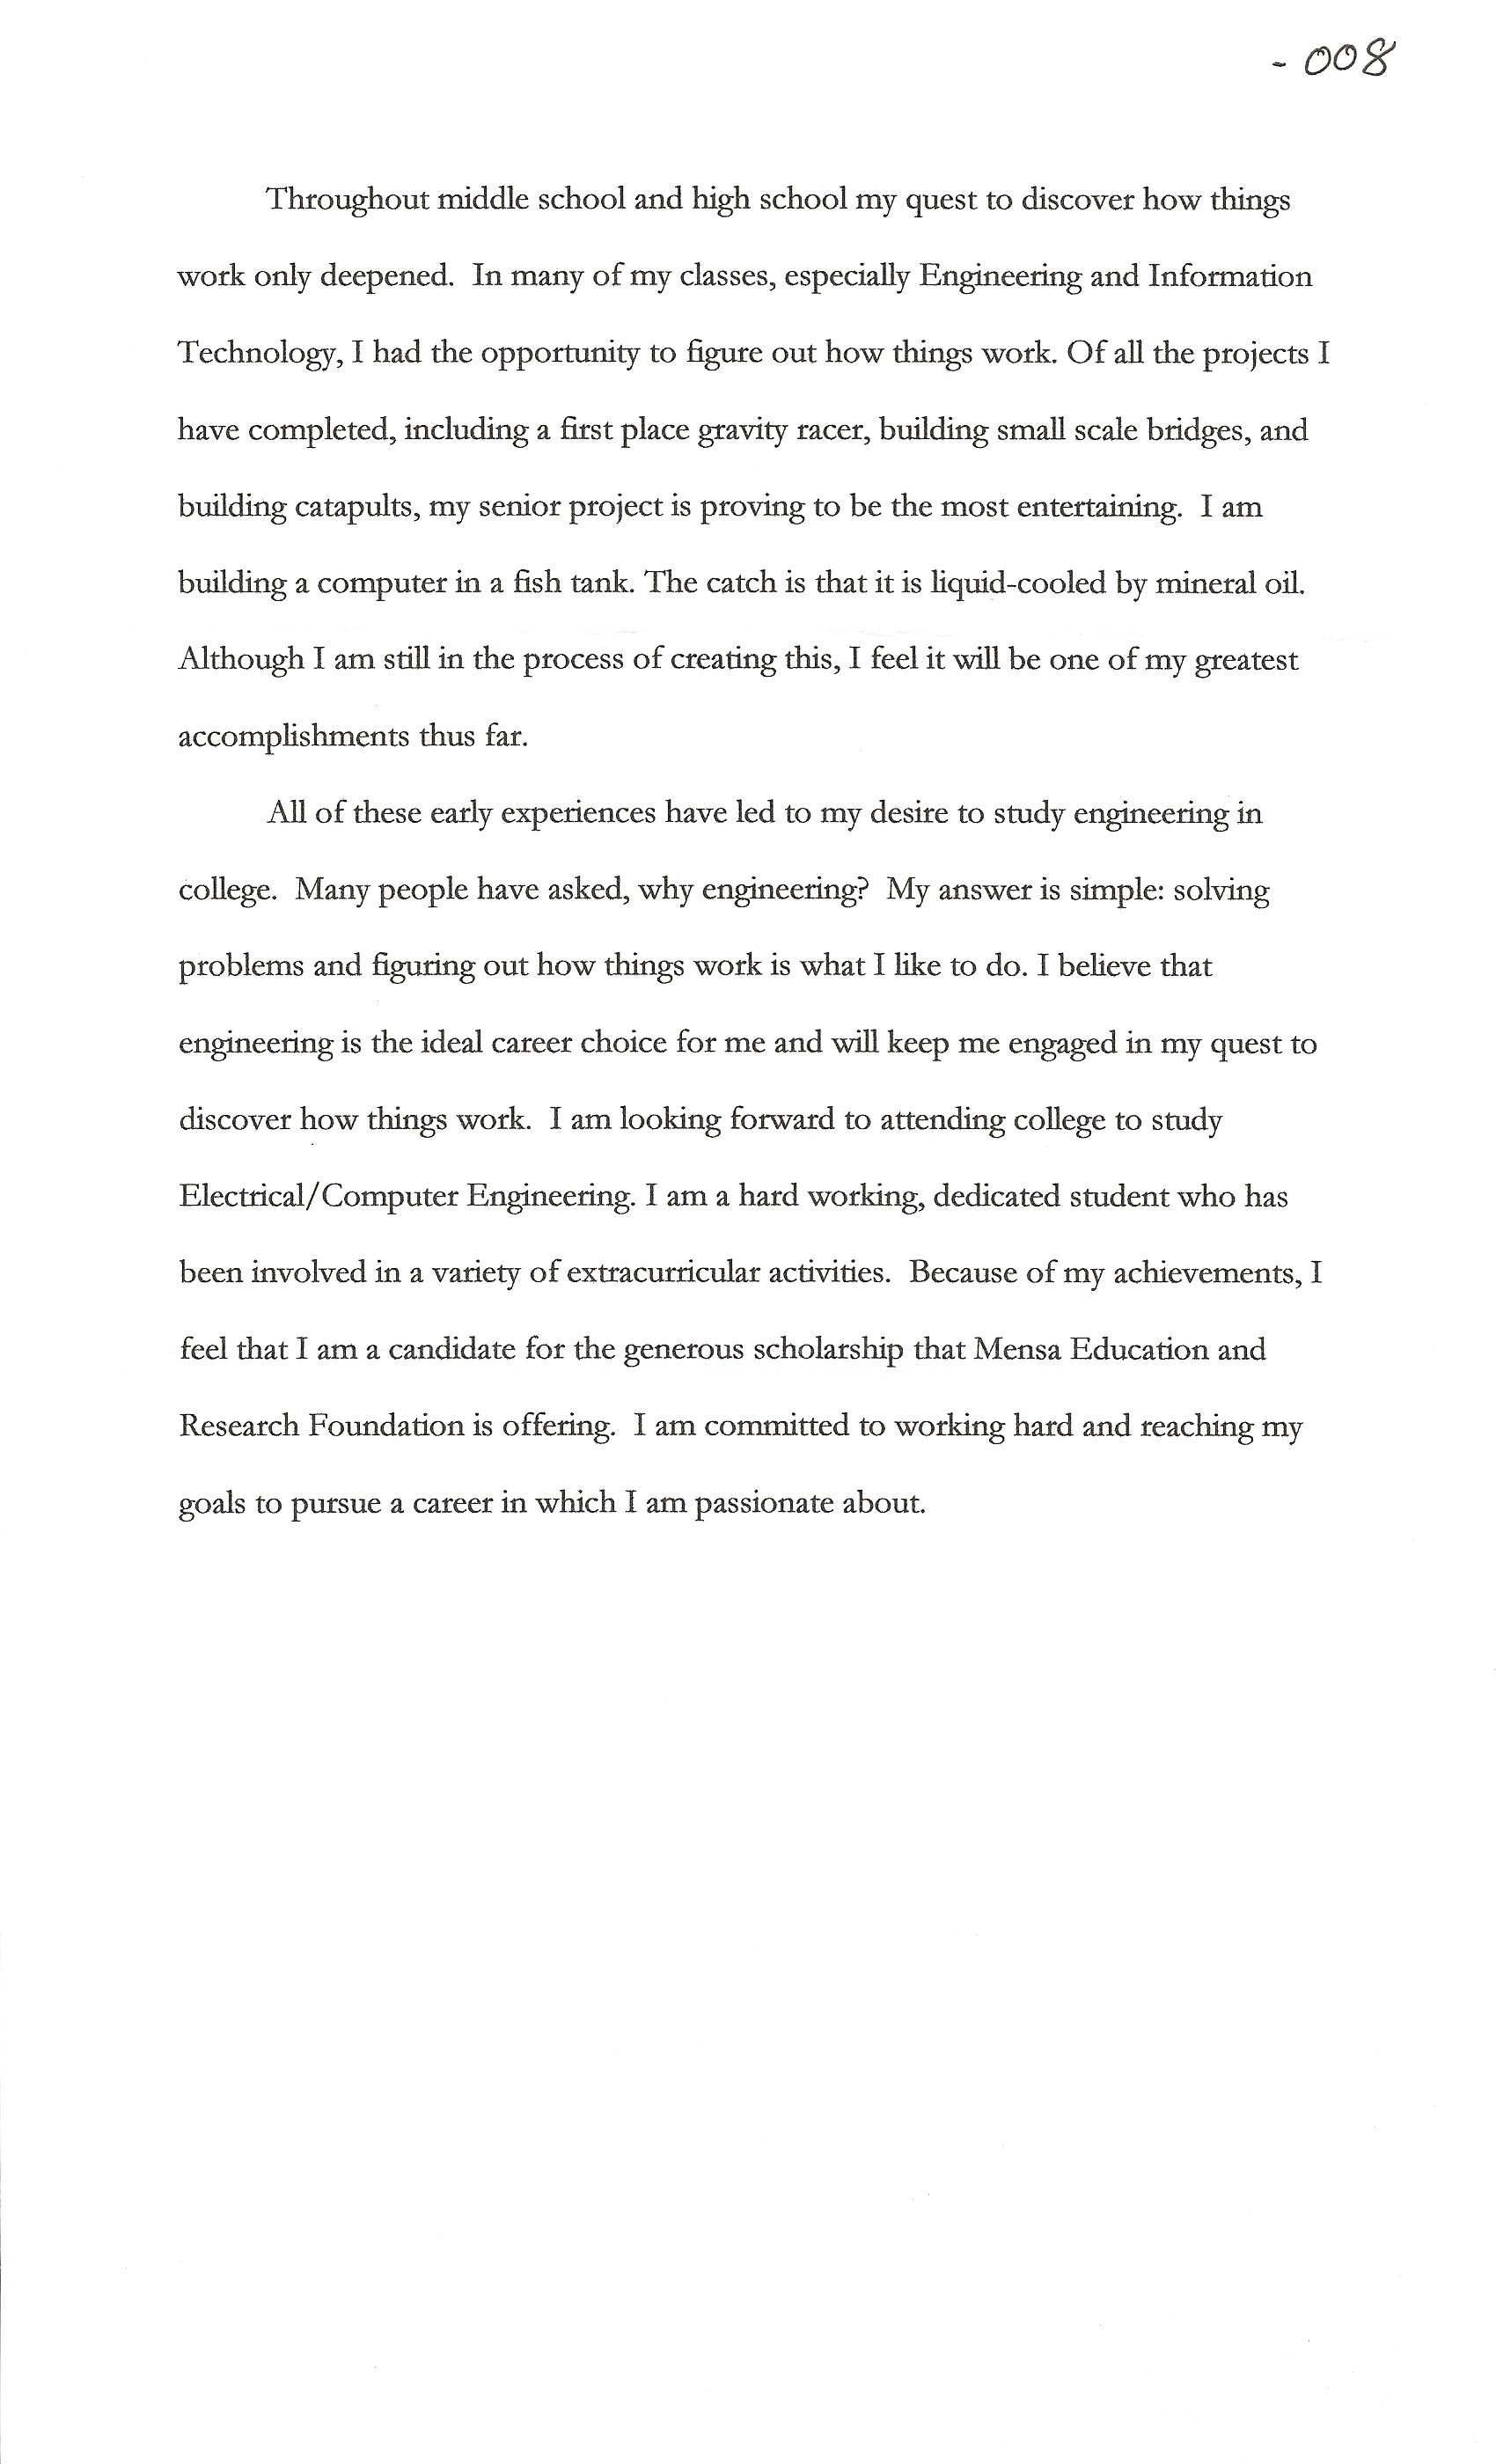 personal and professional goals essay personal and professional career goals examplecollege essay personal goals college essay - Personal Statement Essay Examples For College